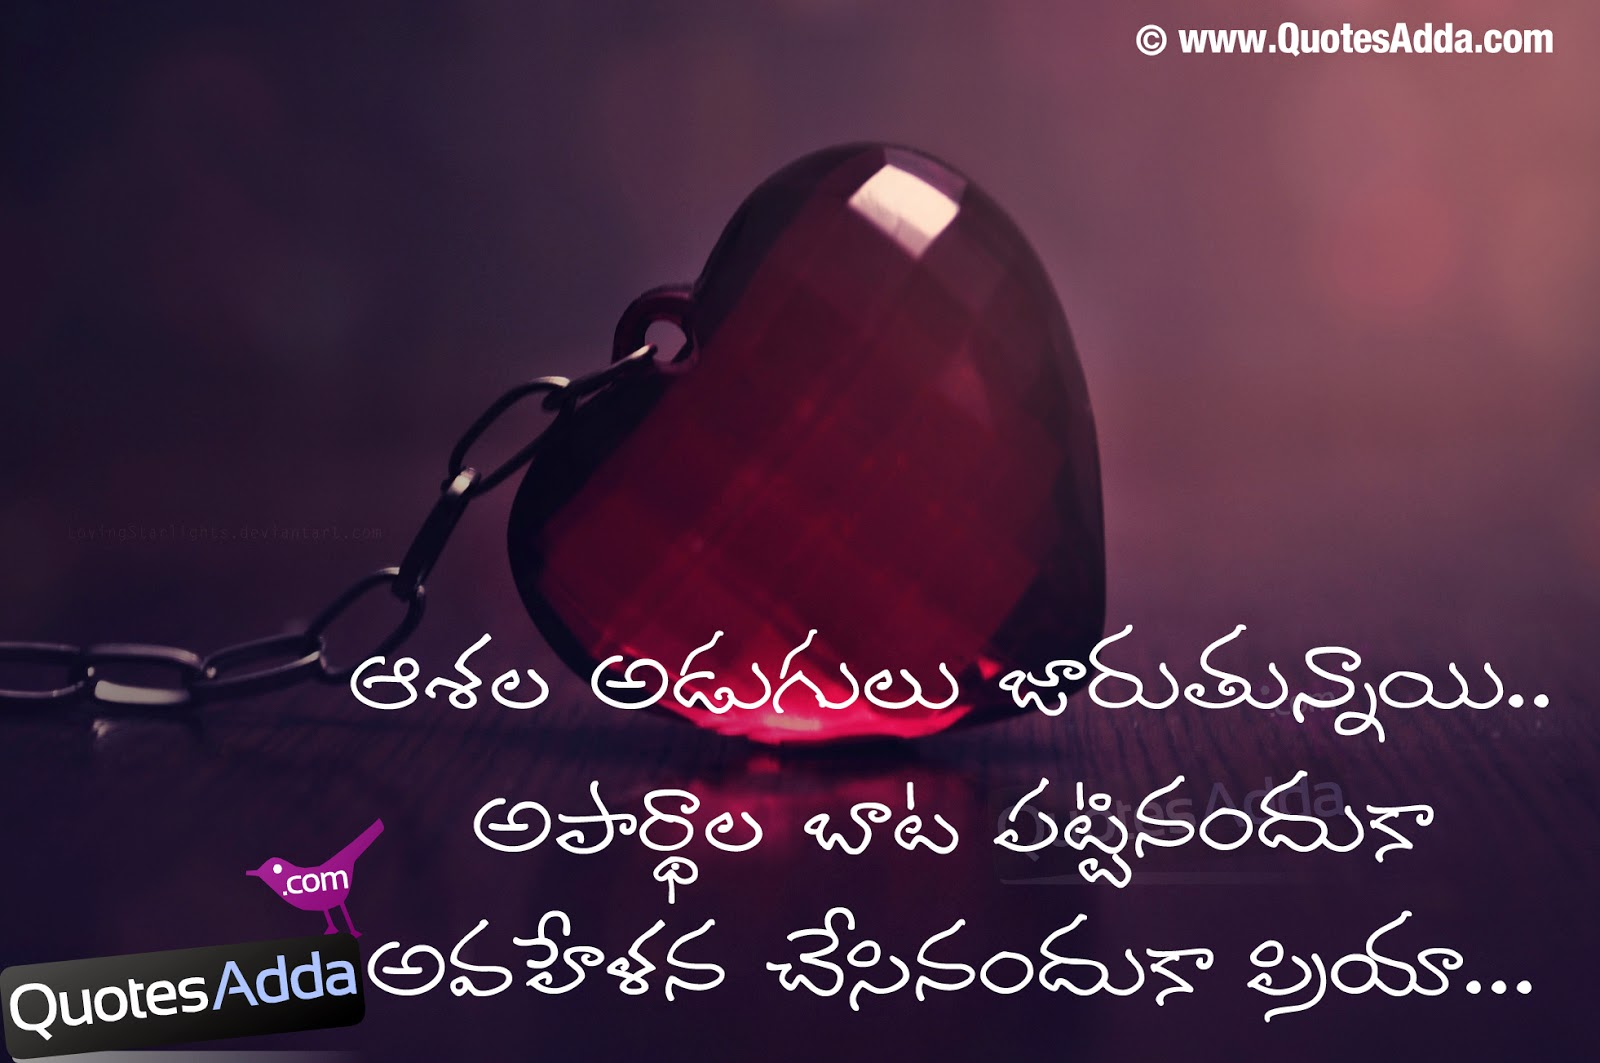 Sad Quotes About Love In Telugu : Love Failure Alone Sad Quotes in Telugu QuotesAdda.com Telugu ...